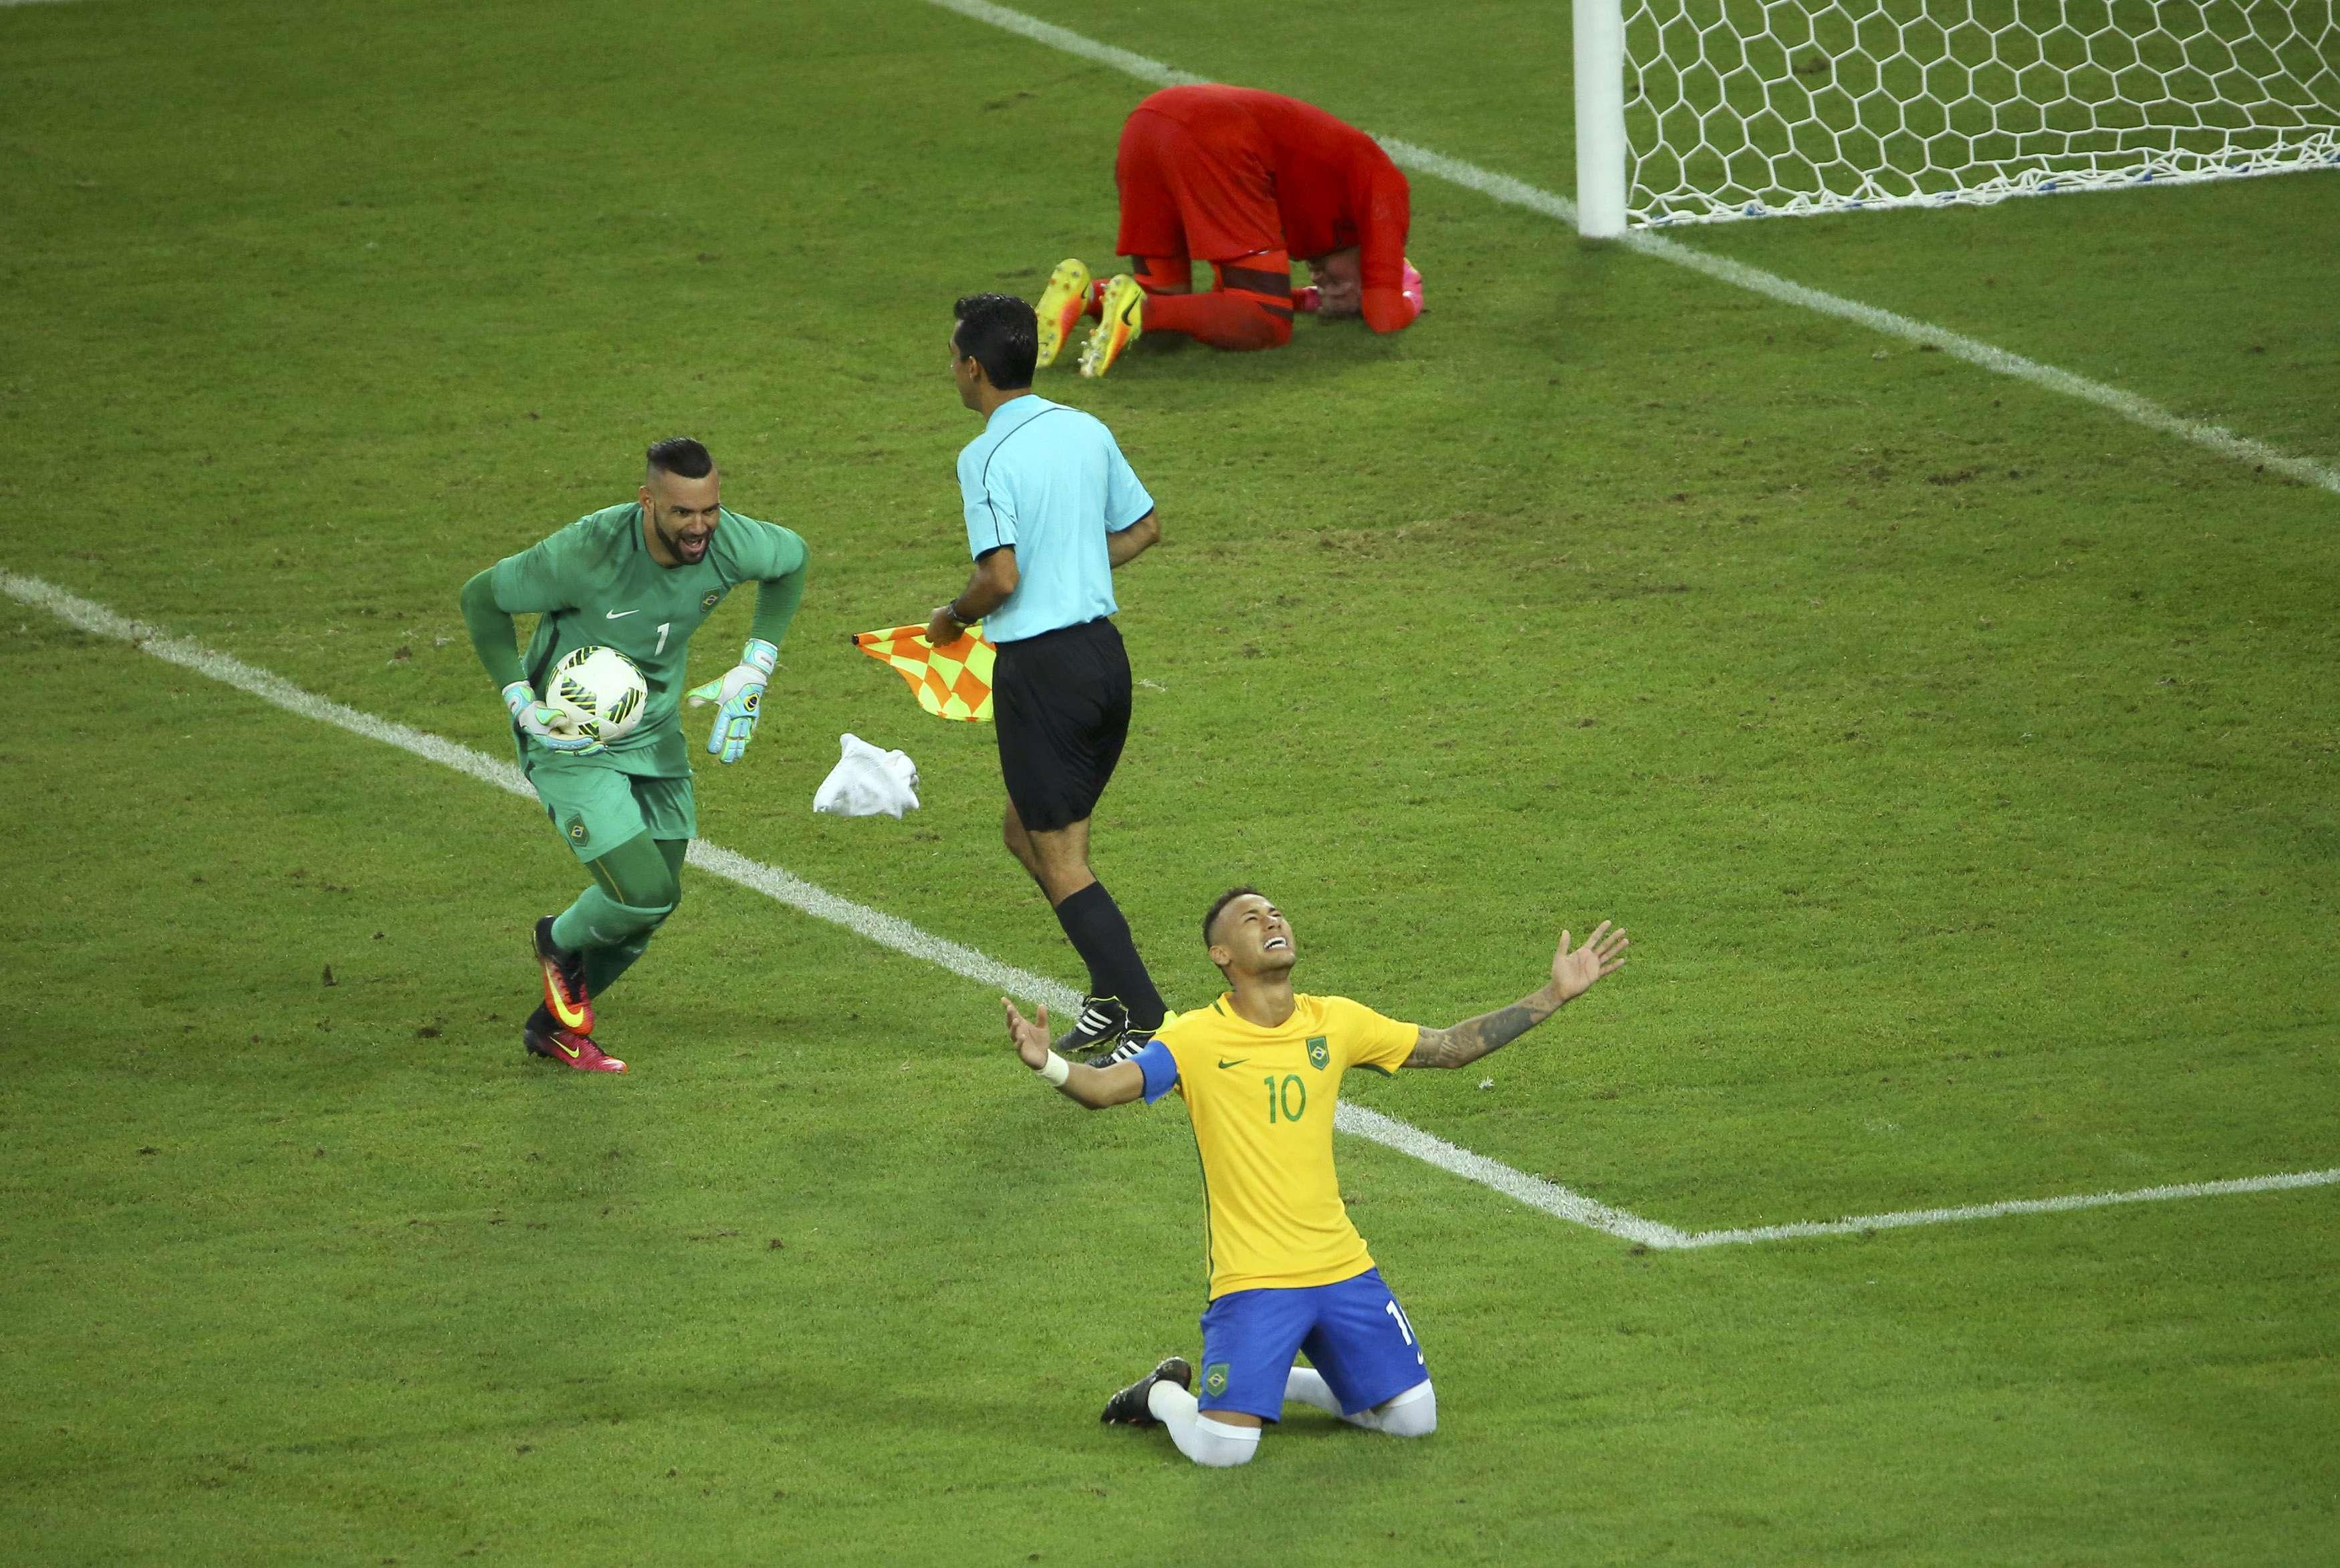 Neymar and Brazil break Olympic curse, win gold in final against Germany